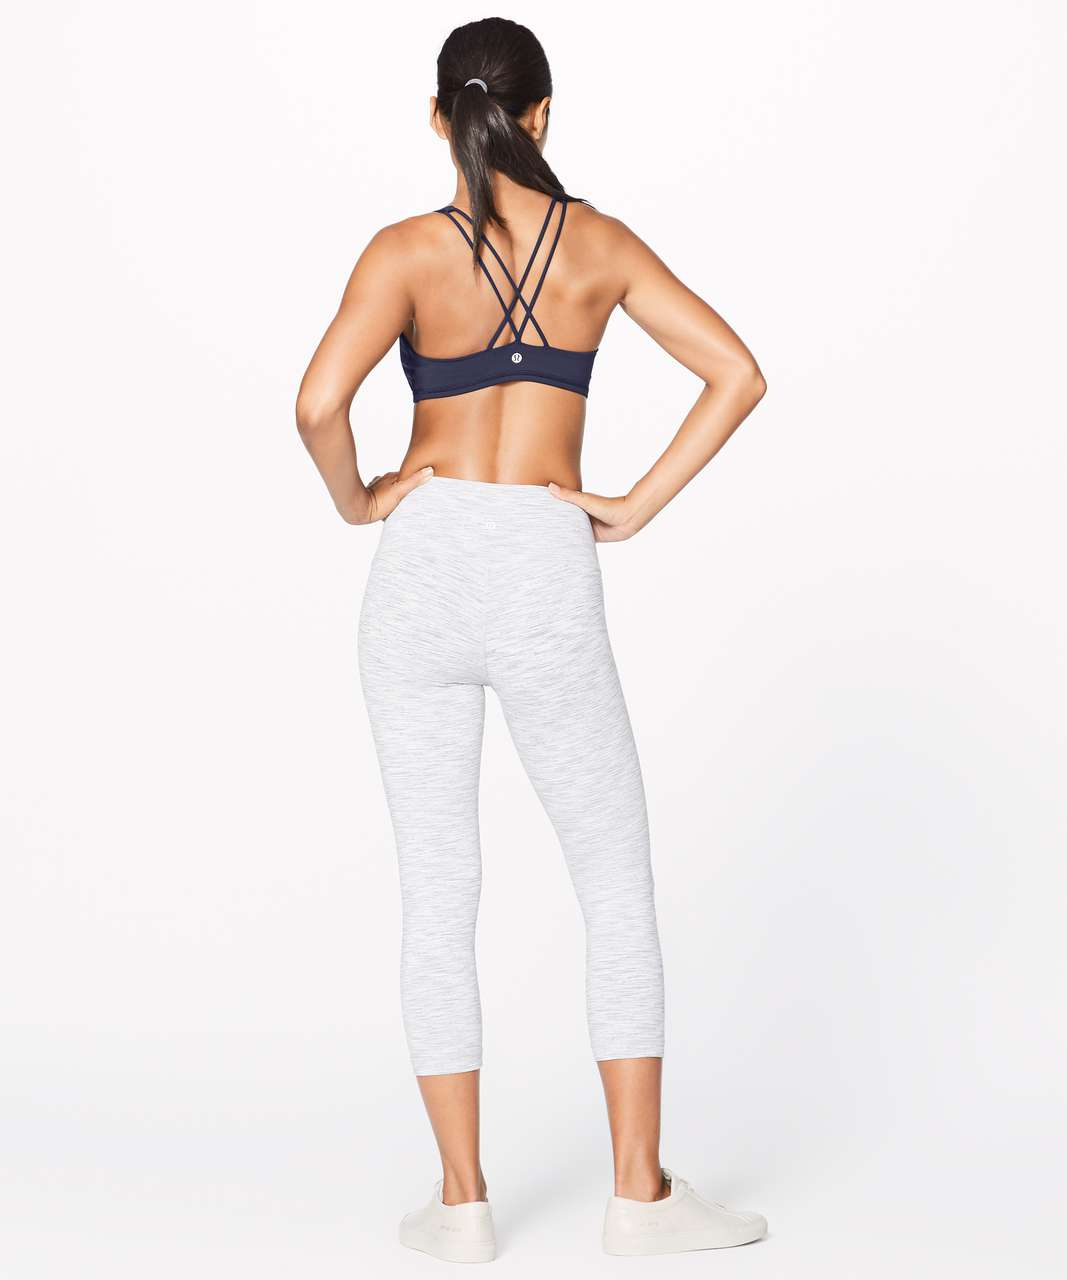 Lululemon Free To Be Bra - Midnight Navy